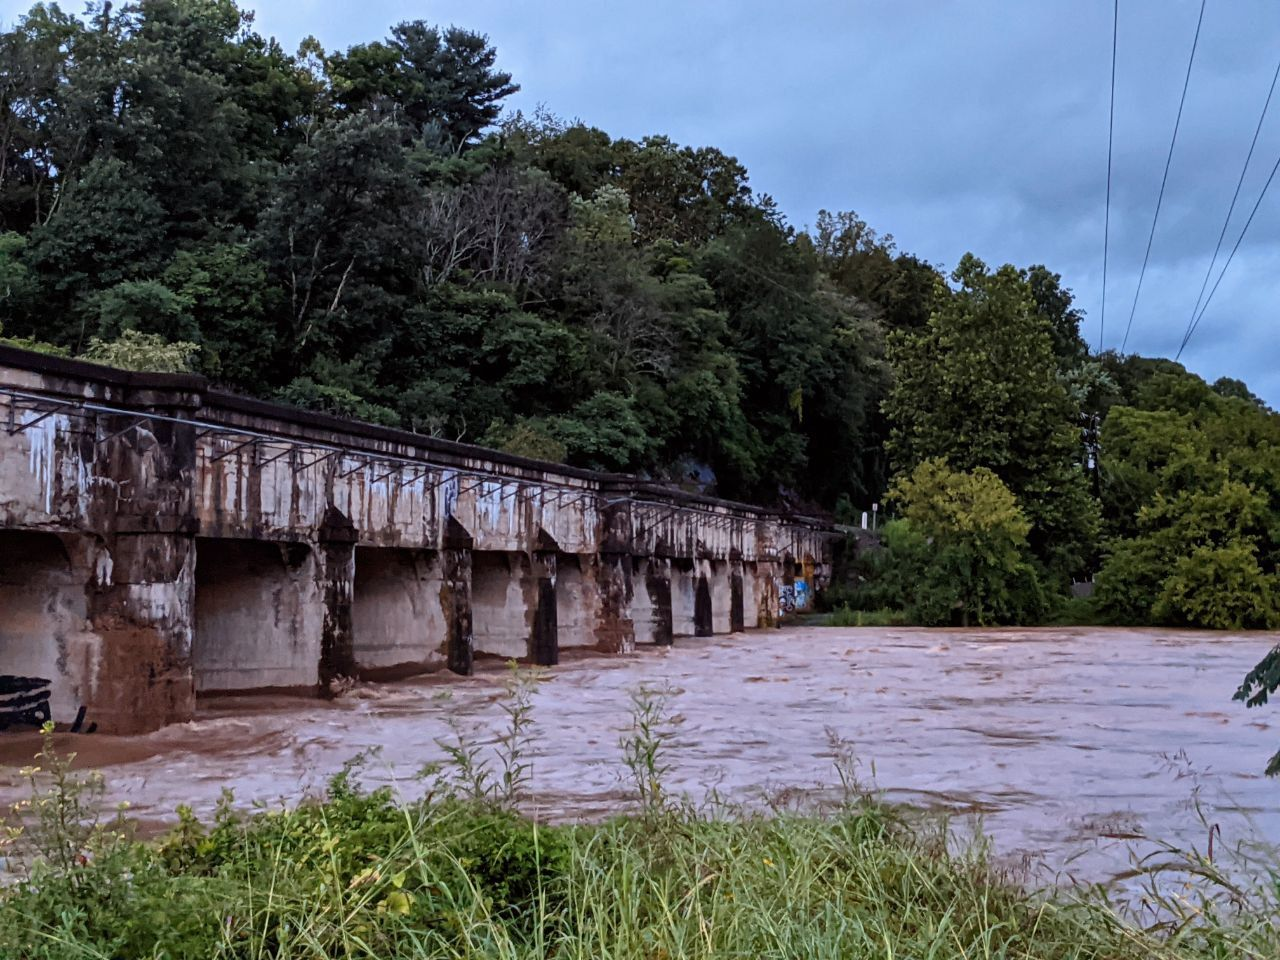 French Broad river, surrounded by greenery, with a bridge crossing over. River is flooding.